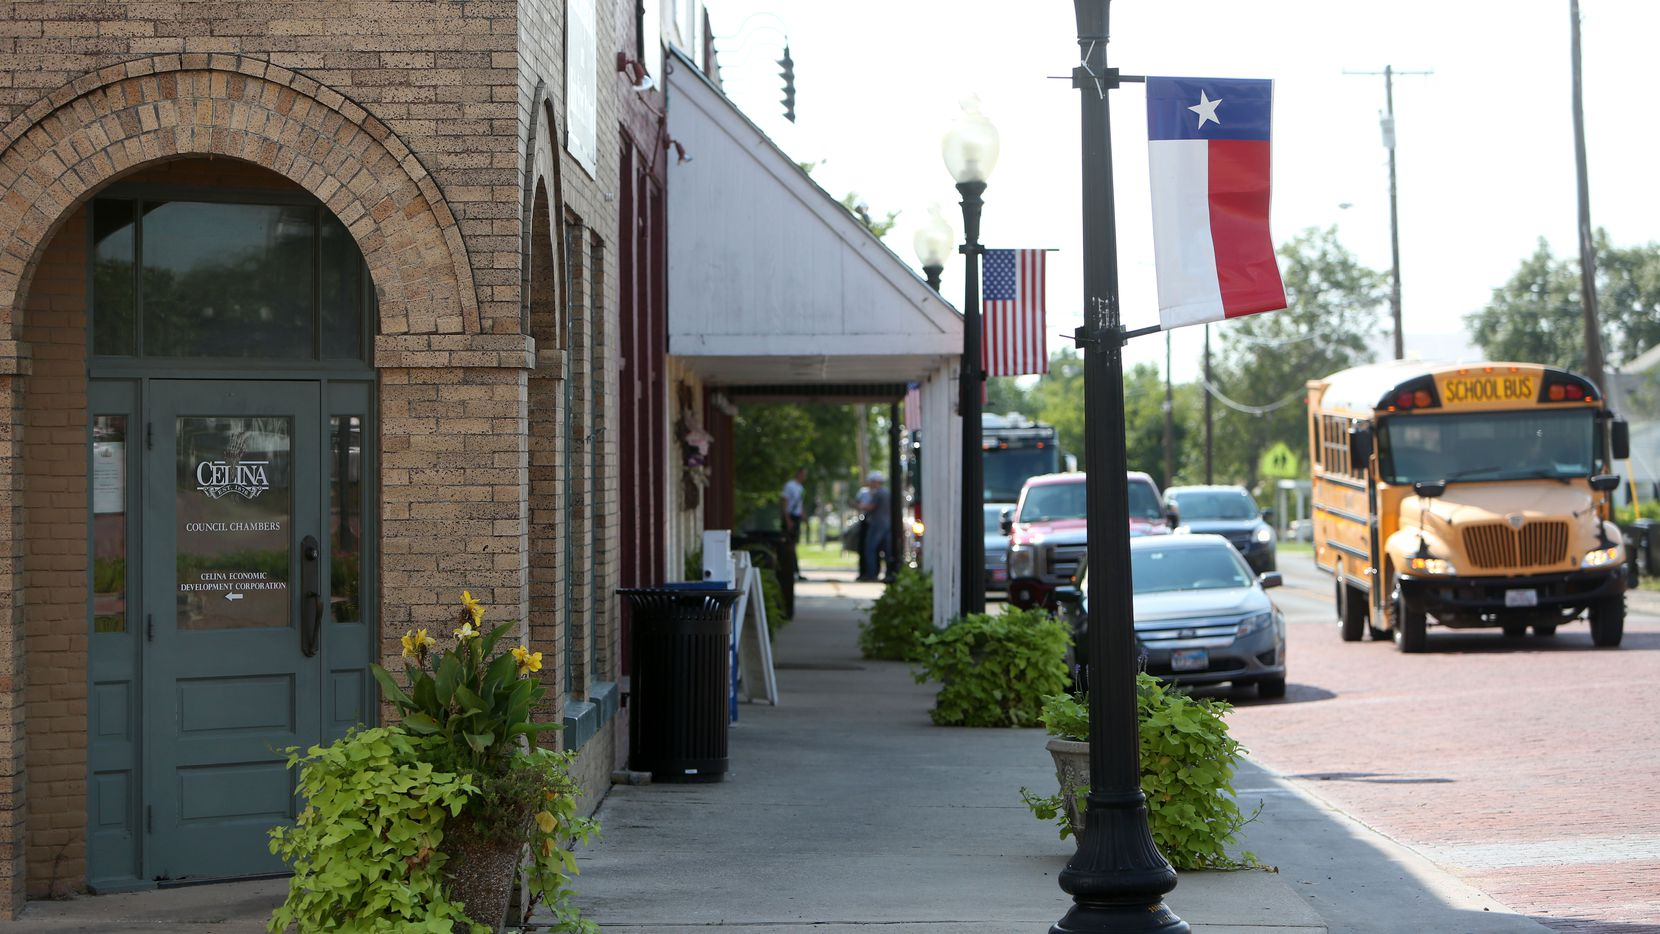 Celina is one of the fastest growth suburbs north of Dallas.